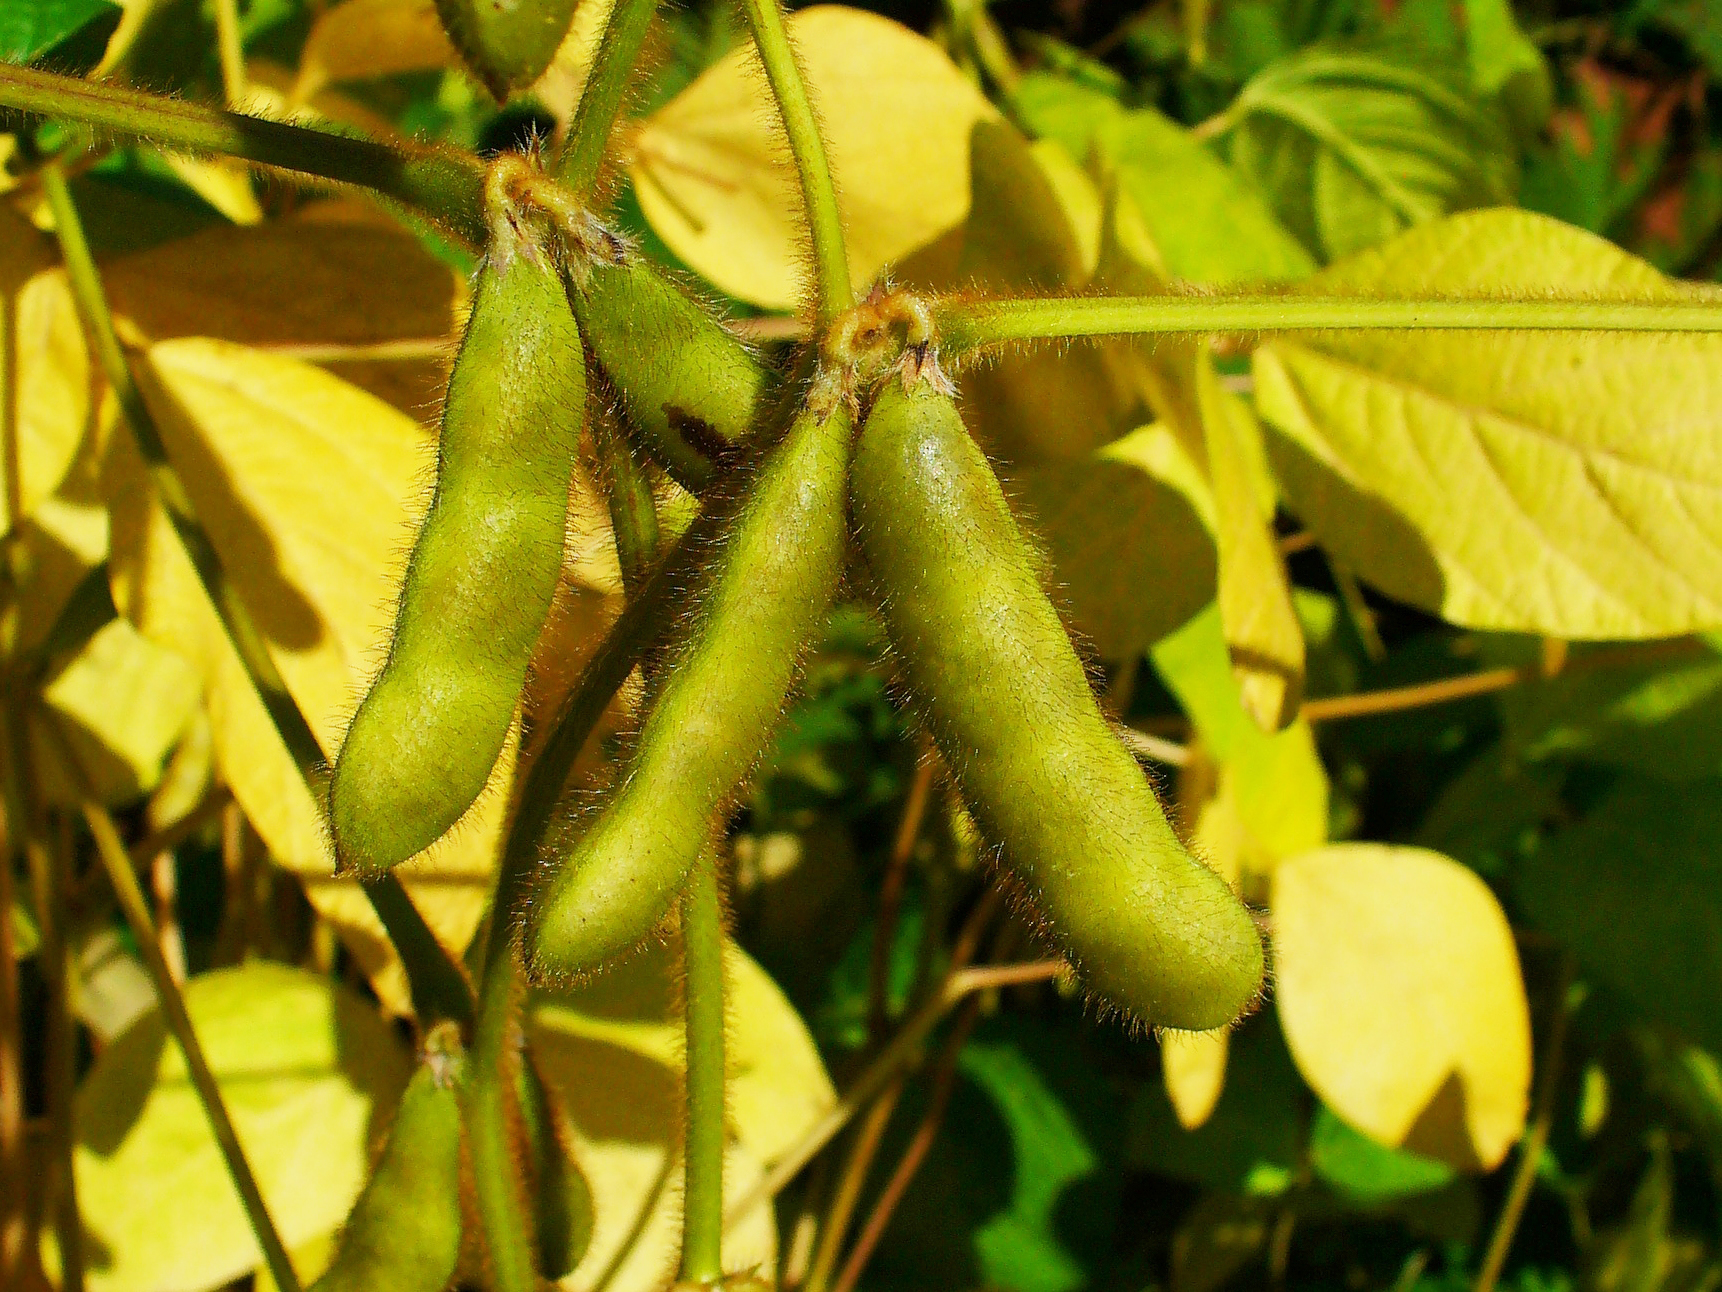 Mature soybeans.